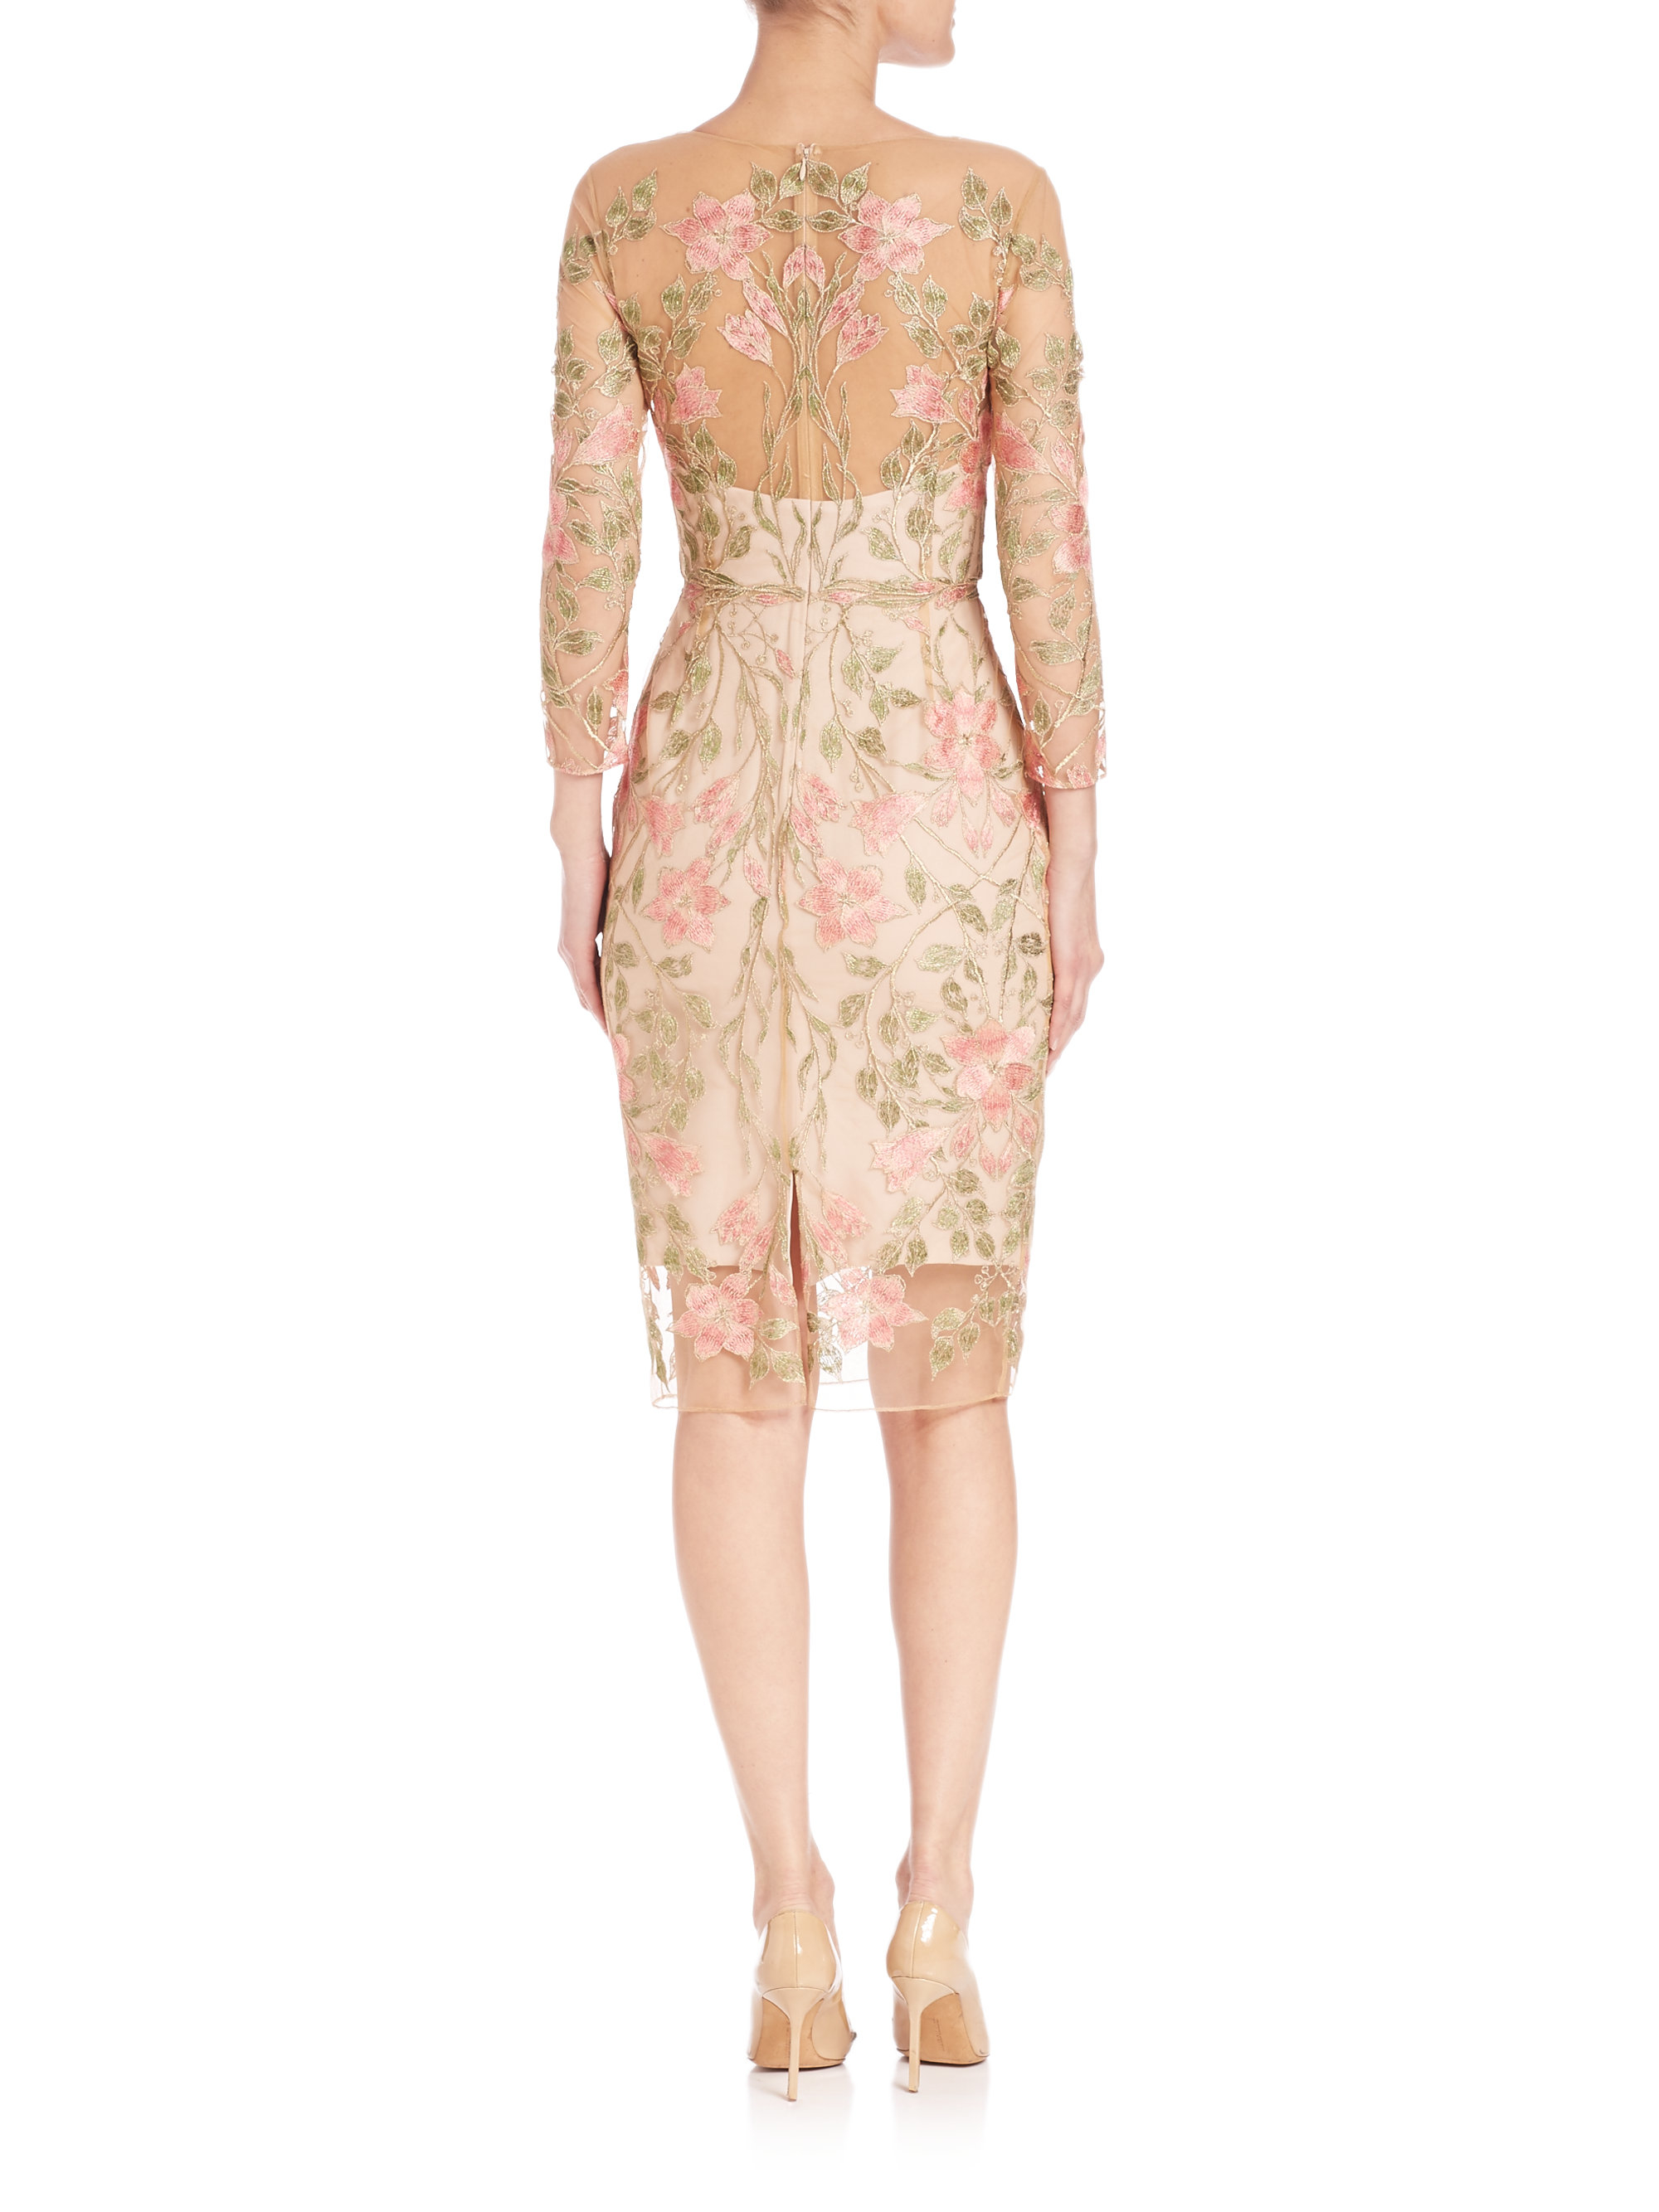 Notte by marchesa floral embroidered cocktail dress in